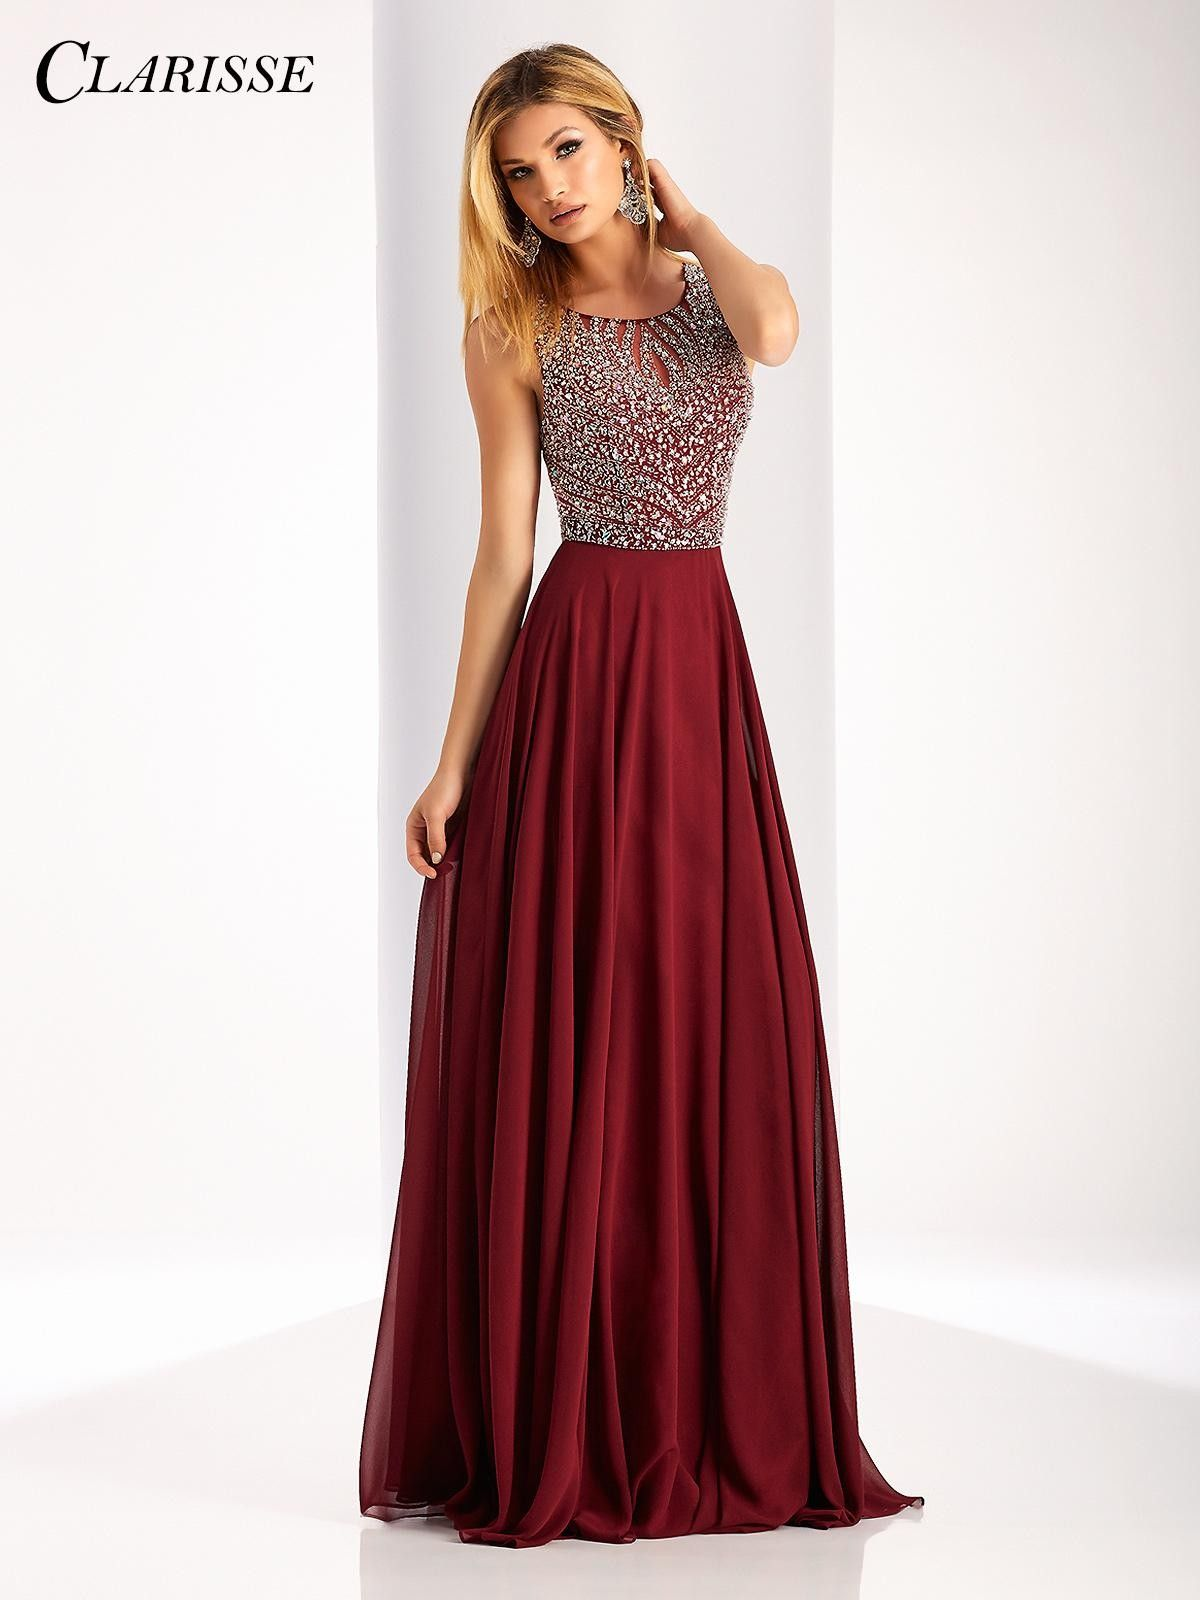 Clarisse 3167 Glittering Stones Evening Gown  90. Image result for 8th  grade graduation dress long Burgundy Prom Dresses Long 9a07ae0fbbec